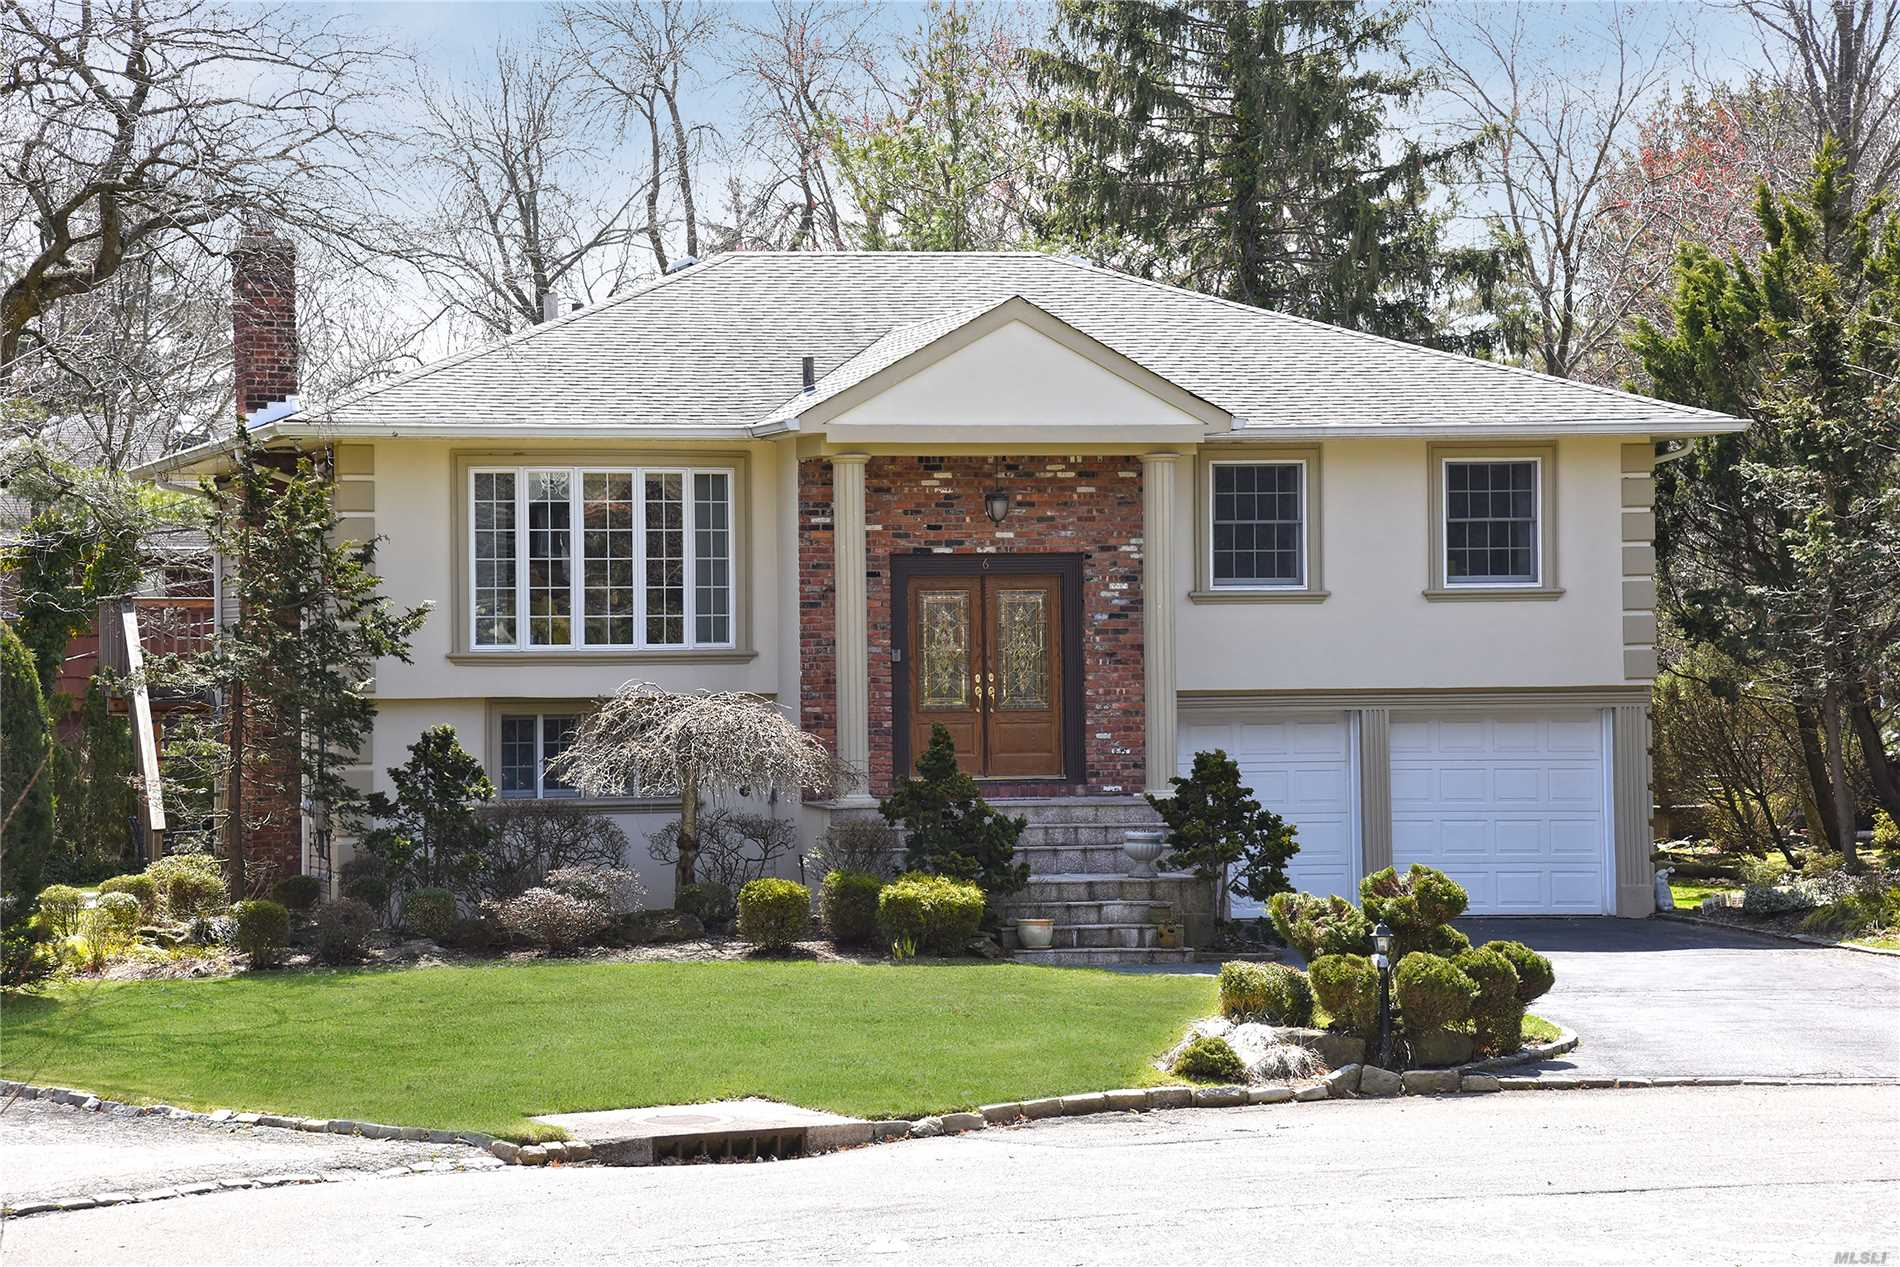 Lovely Updated Wide-Line Hi-Ranch In Searingtown. Superior Location, Cul-De-Sac, Updated And Well Maintained. Herricks School District.  ** As Per Owner New Assessed Value For 2018/2019 Will Be 1, 416. Present Taxes Are $21, 809. But Using New Assess Value Of 1416 Taxes For This Year Would Be $19, 500. (Please See Attached Tax Grieved Letter.)